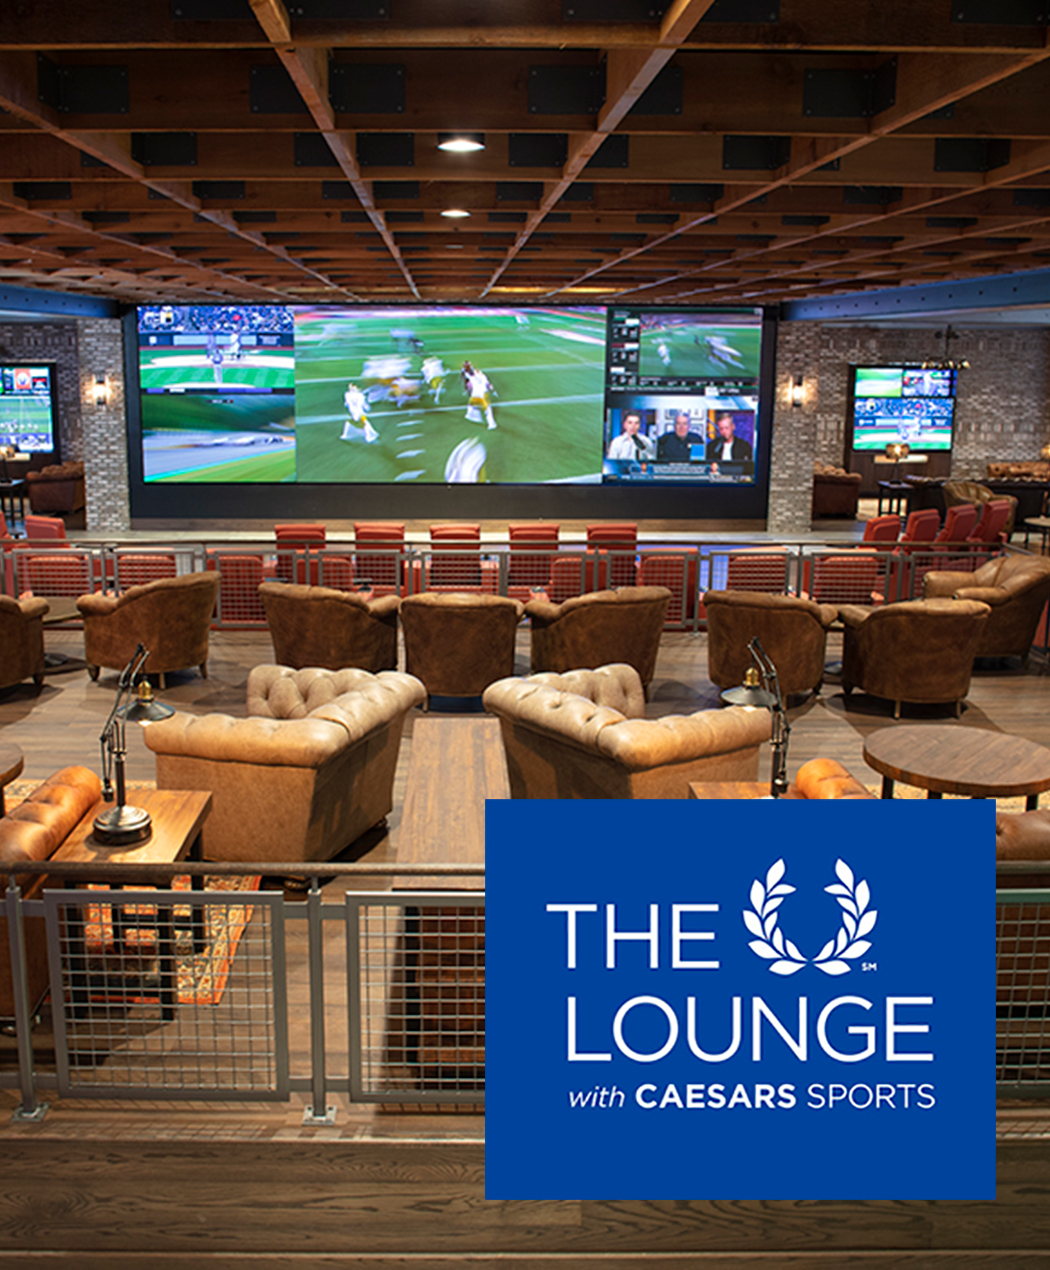 The Lounge with Caesars Sports